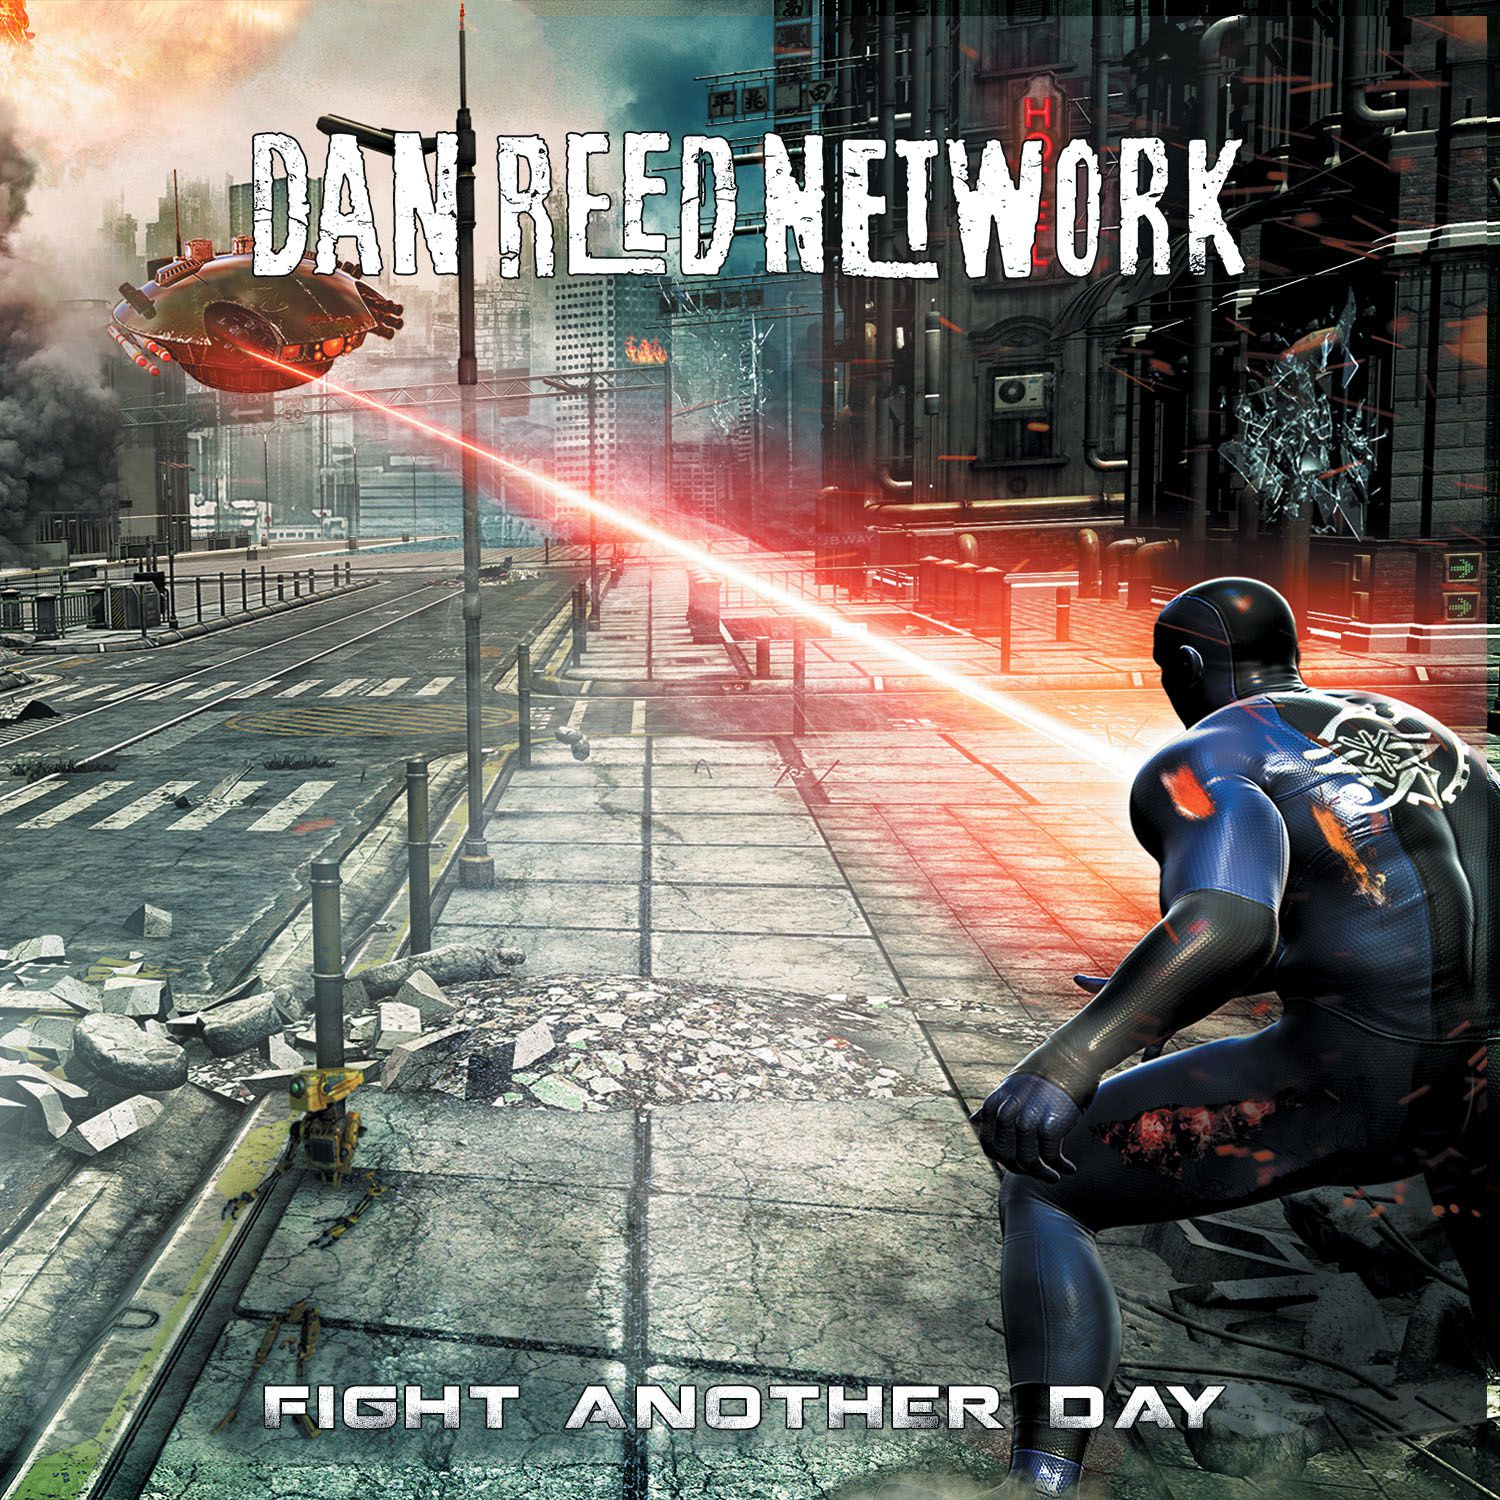 CD review DAN REED NETWORK &quot&#x3B;Fight Another Day&quot&#x3B;